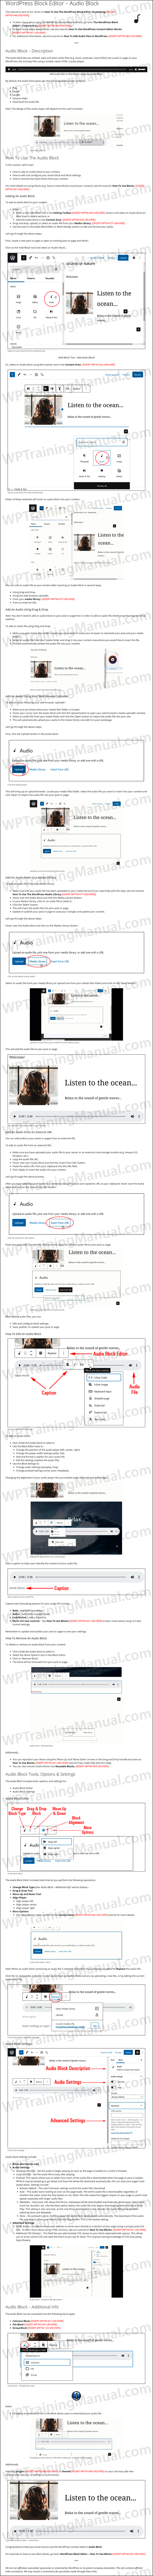 White Label Tutorial: WordPress Block Editor - Audio Block - WPTrainingManual.com